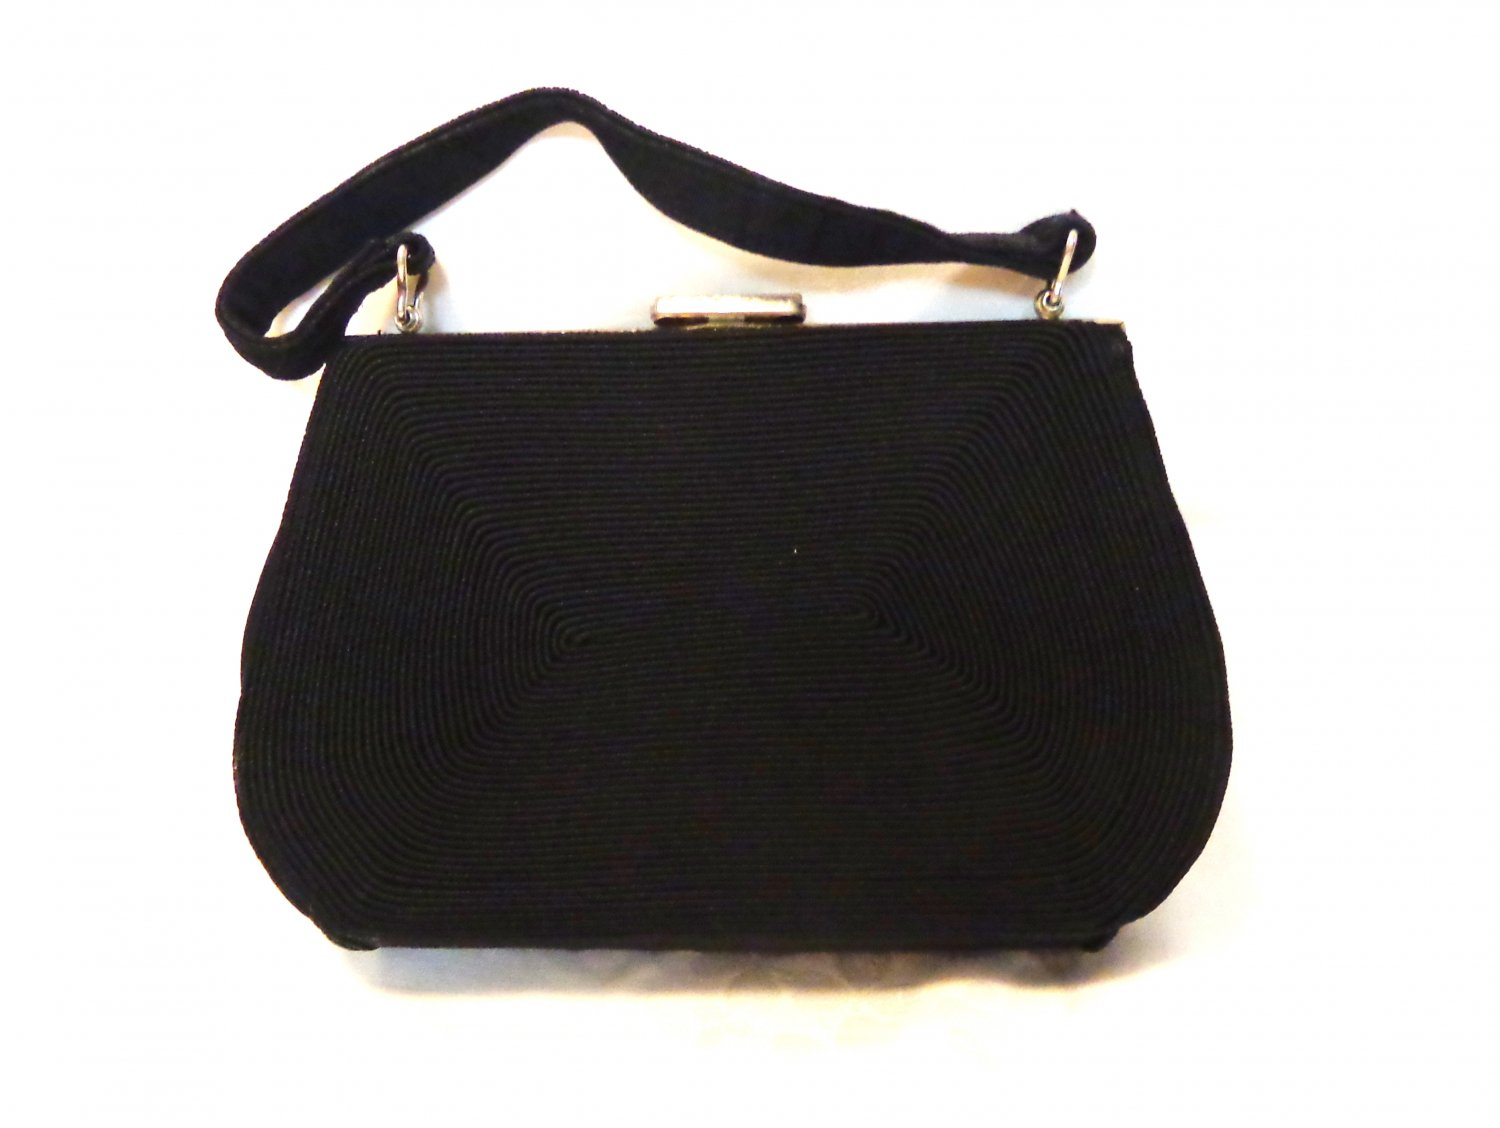 Gold Seal corde dressy black handbag Art Deco vintage fashion accessories ll3417